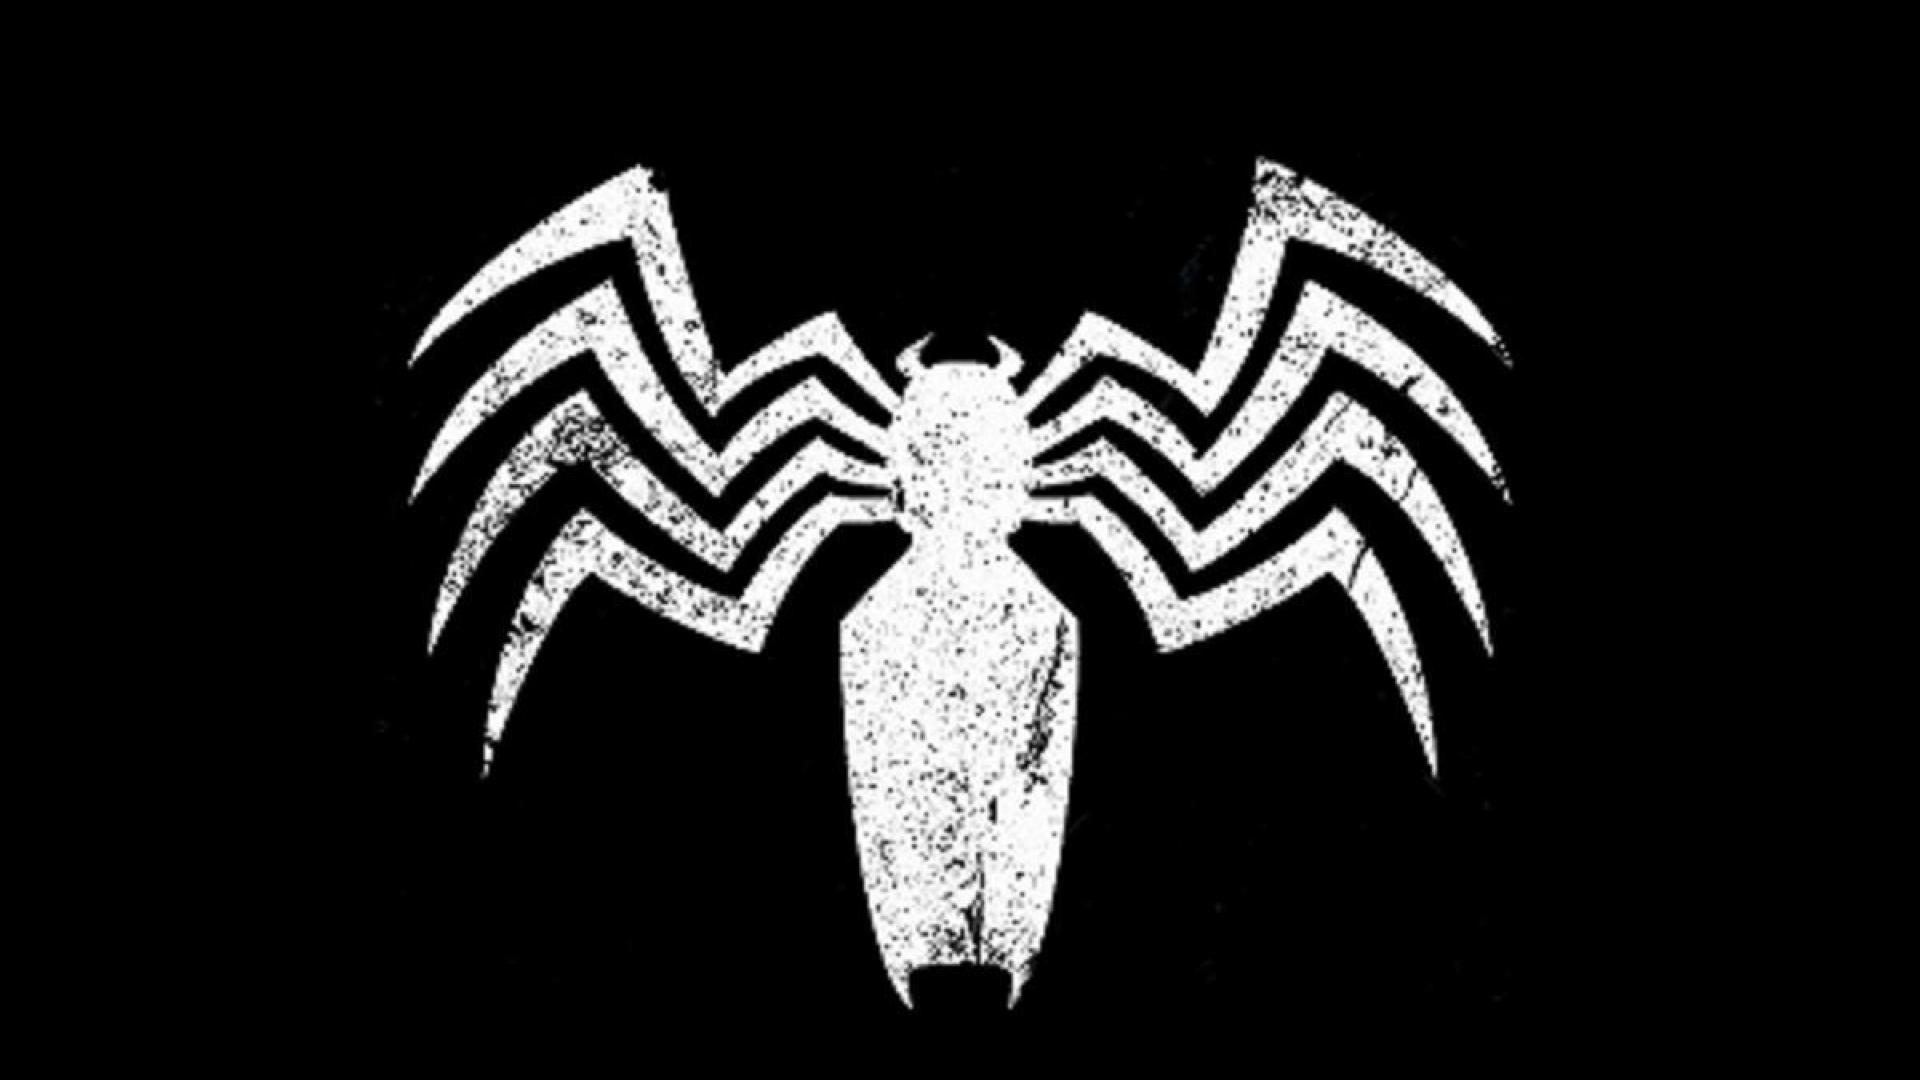 Venom wallpapers wallpaper cave - Black and white spiderman wallpaper ...